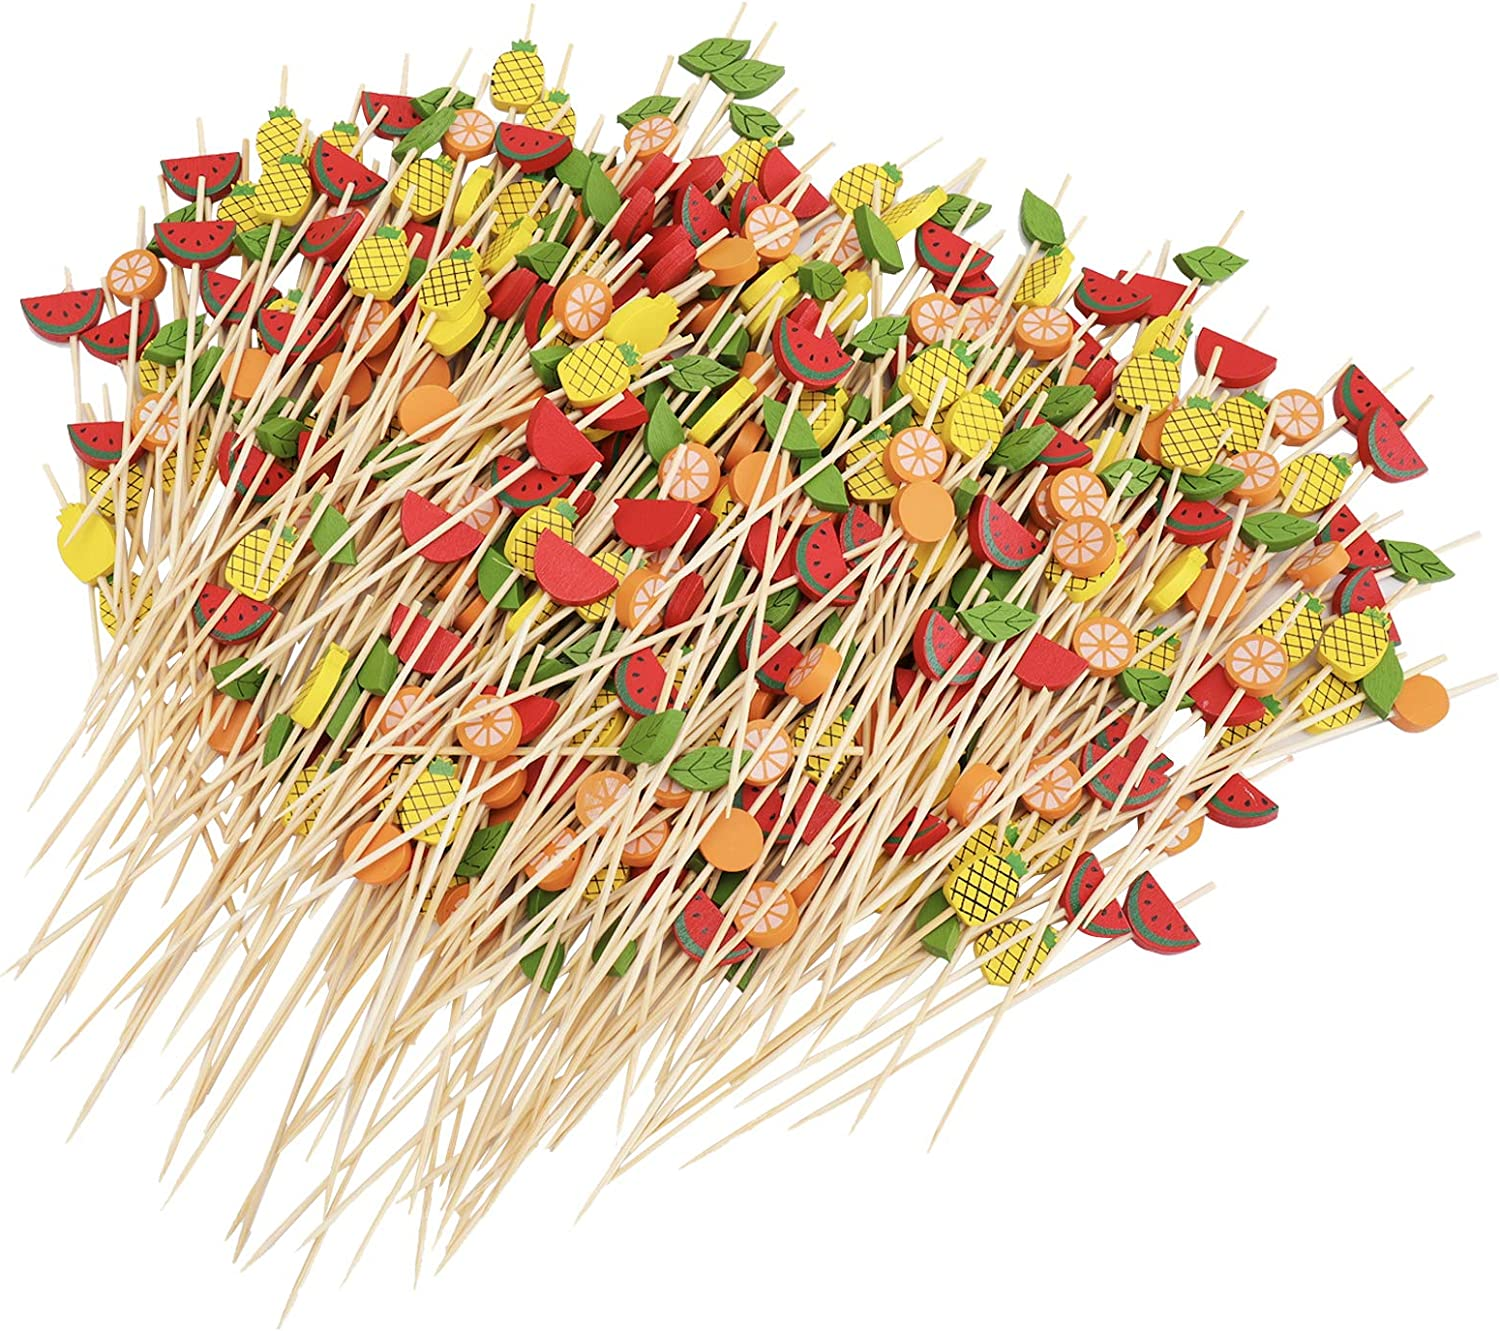 Suwimut 400 Counts Bamboo Sticks Cocktail Picks, 4.7 Inches Fruit Kabob Skewers Long Toothpicks Food Sticks for Cocktail, Appetizers, Fruits, Dessert, Party Decoration, Mix Colored